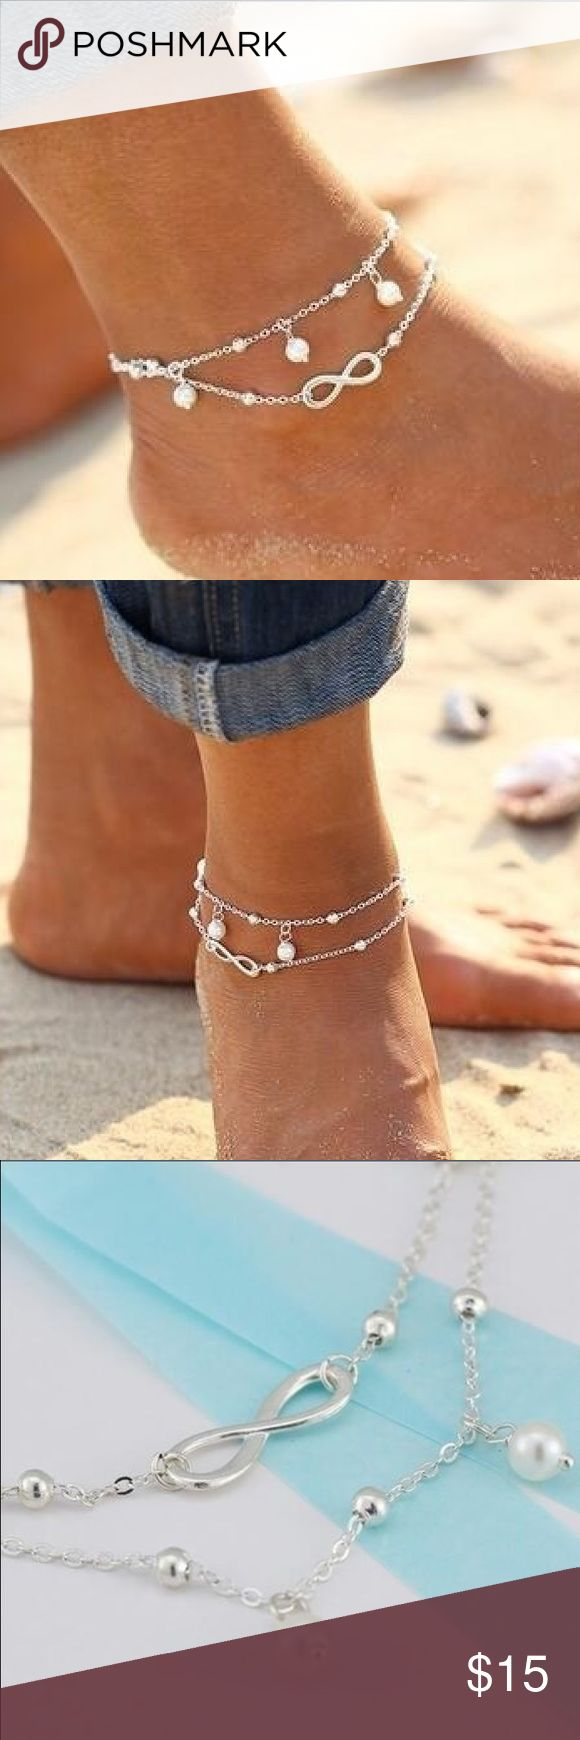 ankle good waterproof monitors bracelet reconsidering issue features the anklet monitor